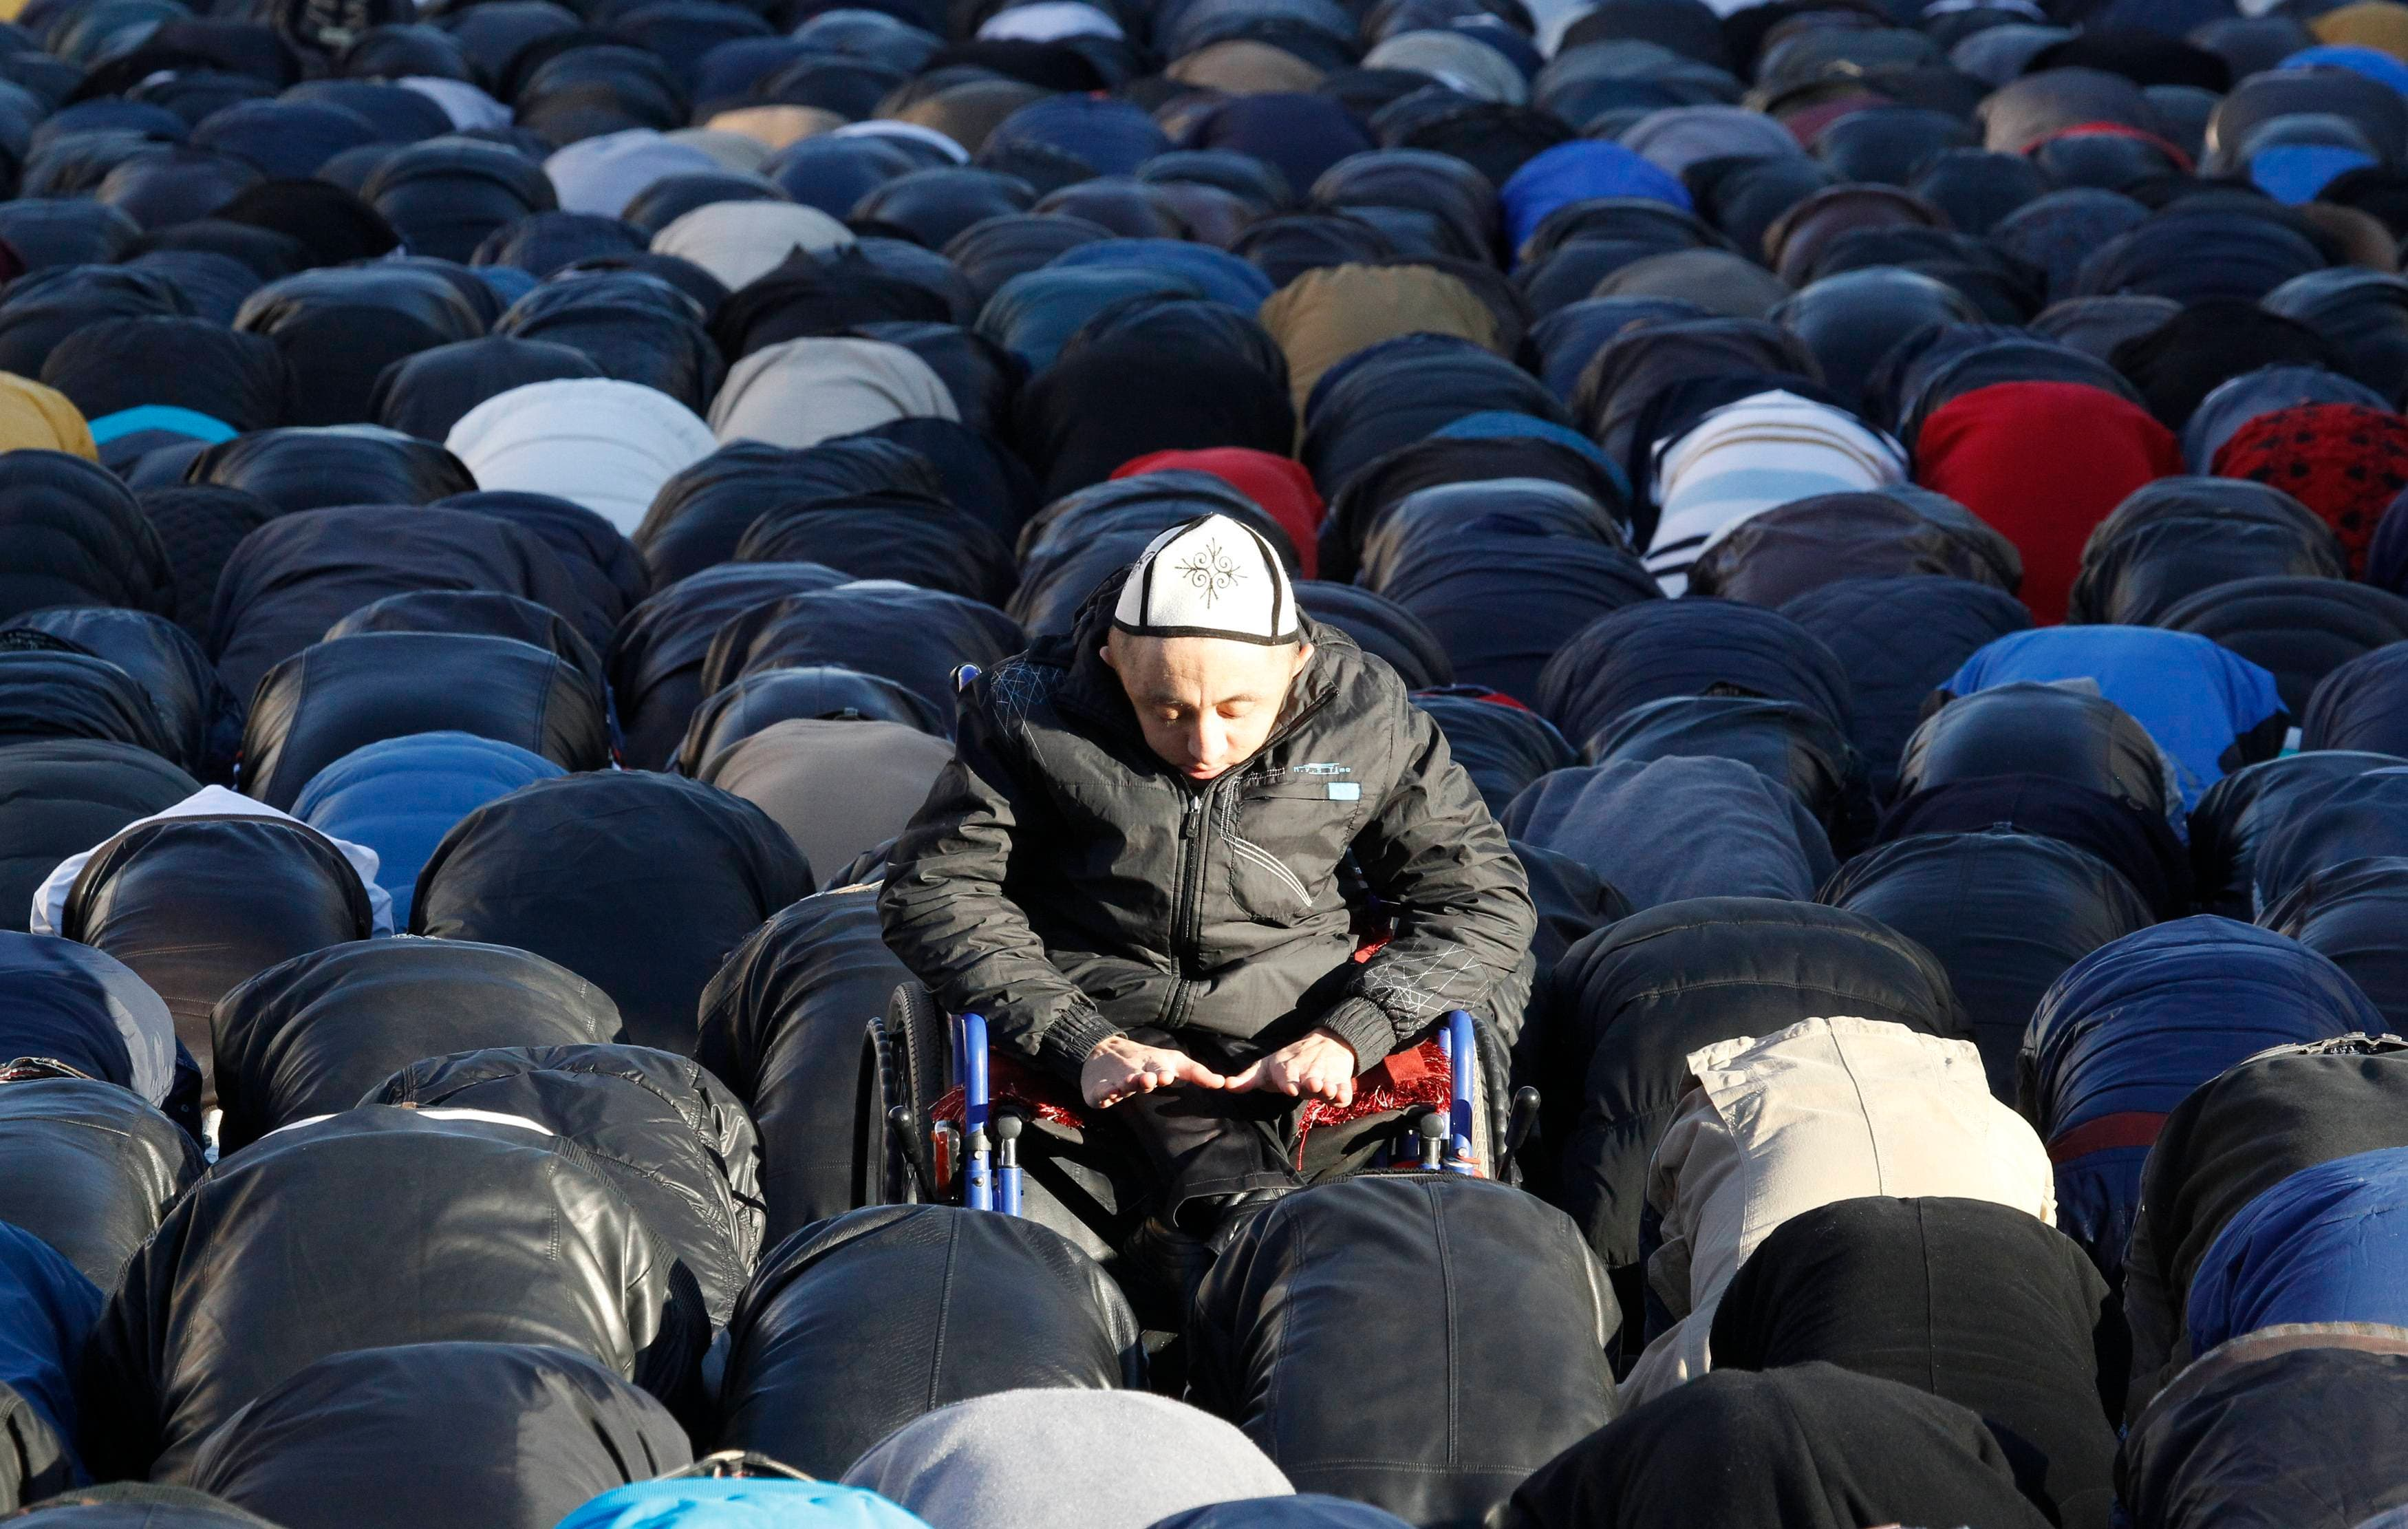 RUSSIA: Muslims attend an Eid al-Adha mass prayer in Moscow, October 15, 2013. (Reuters)